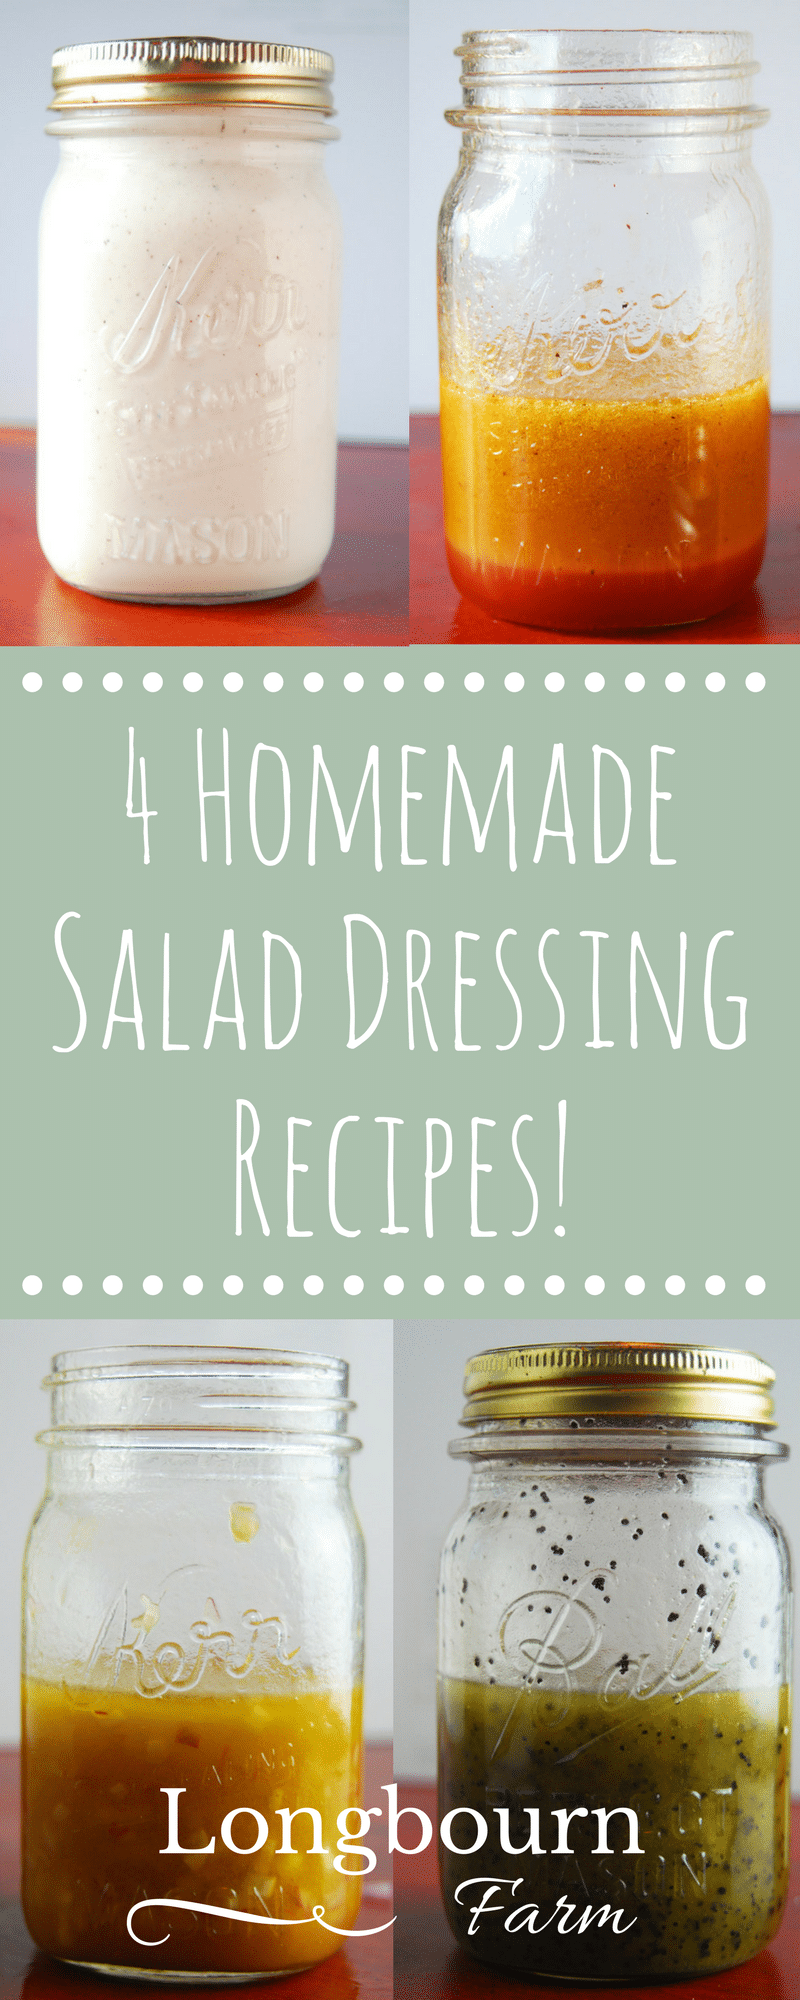 Homemade salad dressing is easy! Get these salad dressing recipes: red wine vinaigrette, honey balsamic vinaigrette, poppy seed & creamy farmhouse dressing!